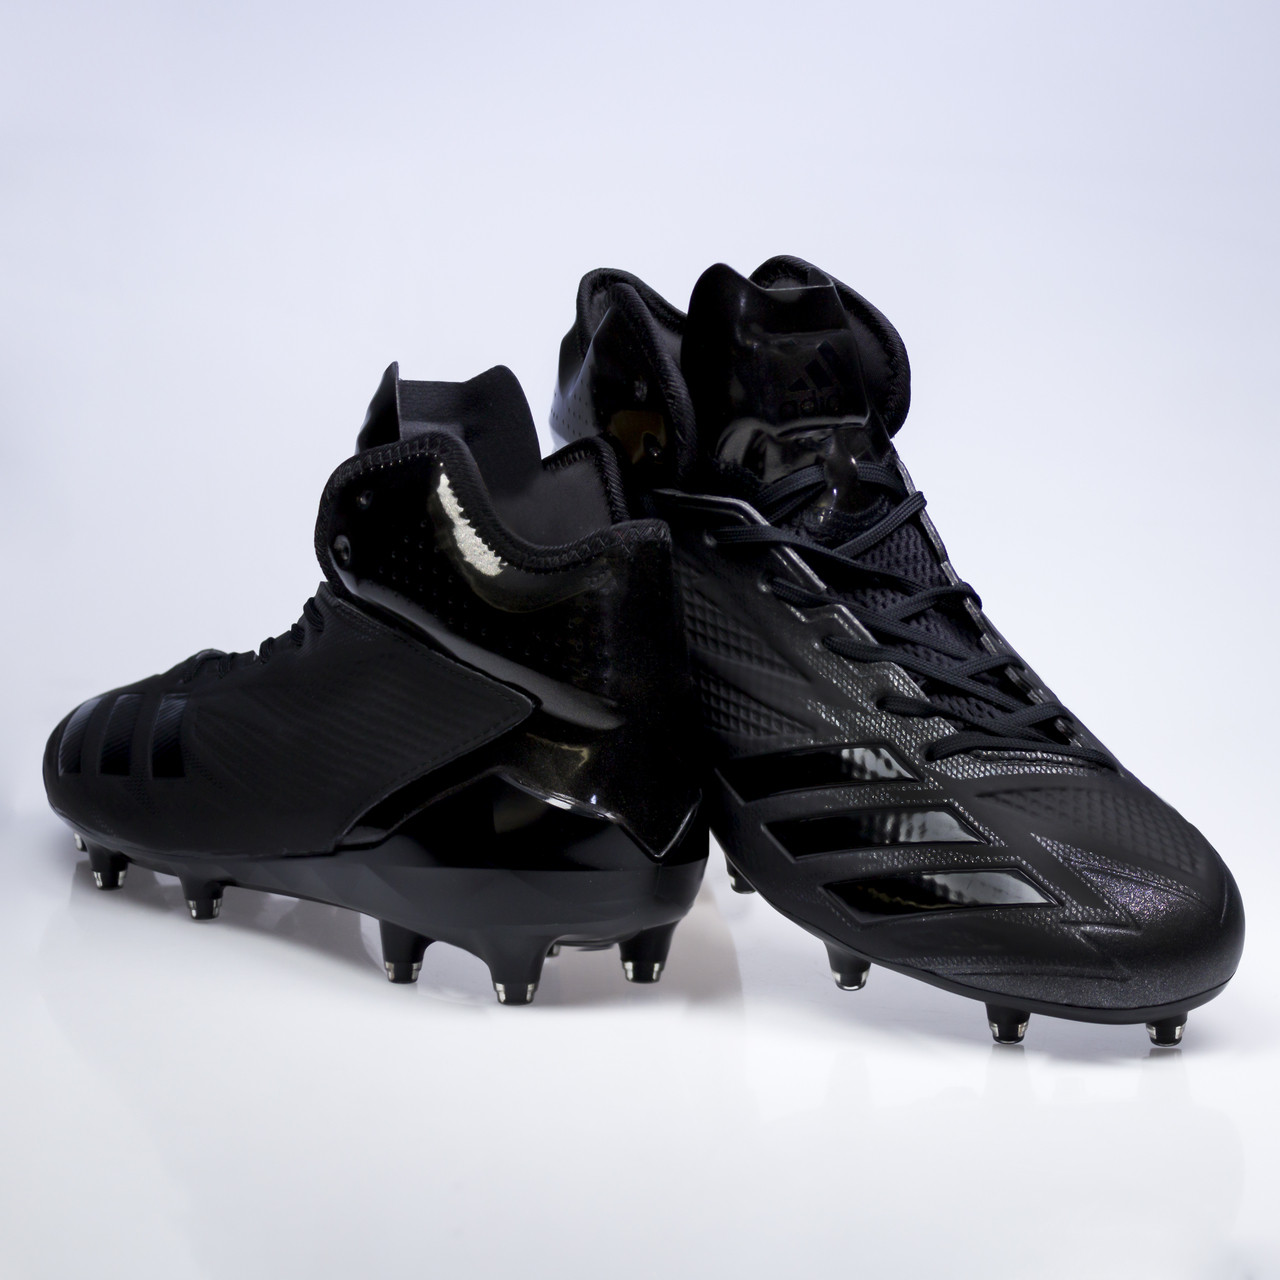 timeless design 41446 97d31 ... Adidas Adizero 5-Star 6.0 Mid Football  Lacrosse Mens Cleats BW0698  ...